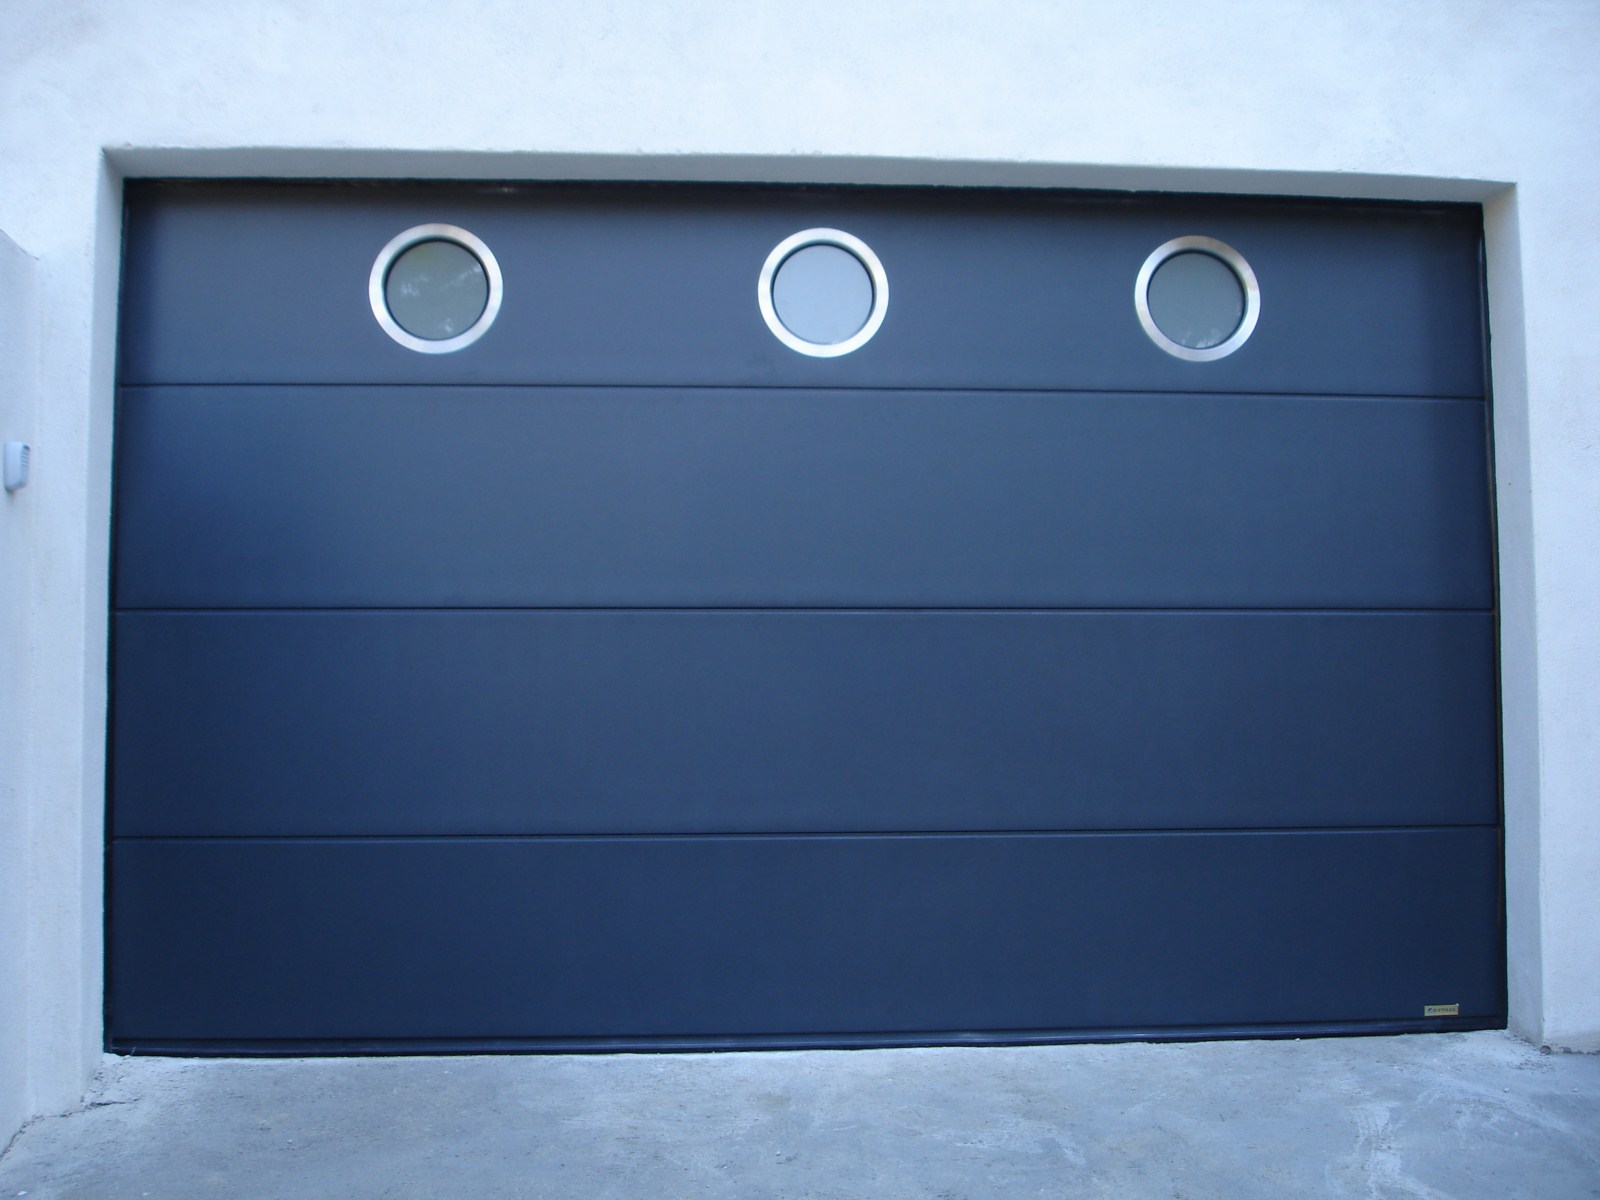 Porte de garage sectionnelle avec hublots ronds alu for Porte de garage avec pose